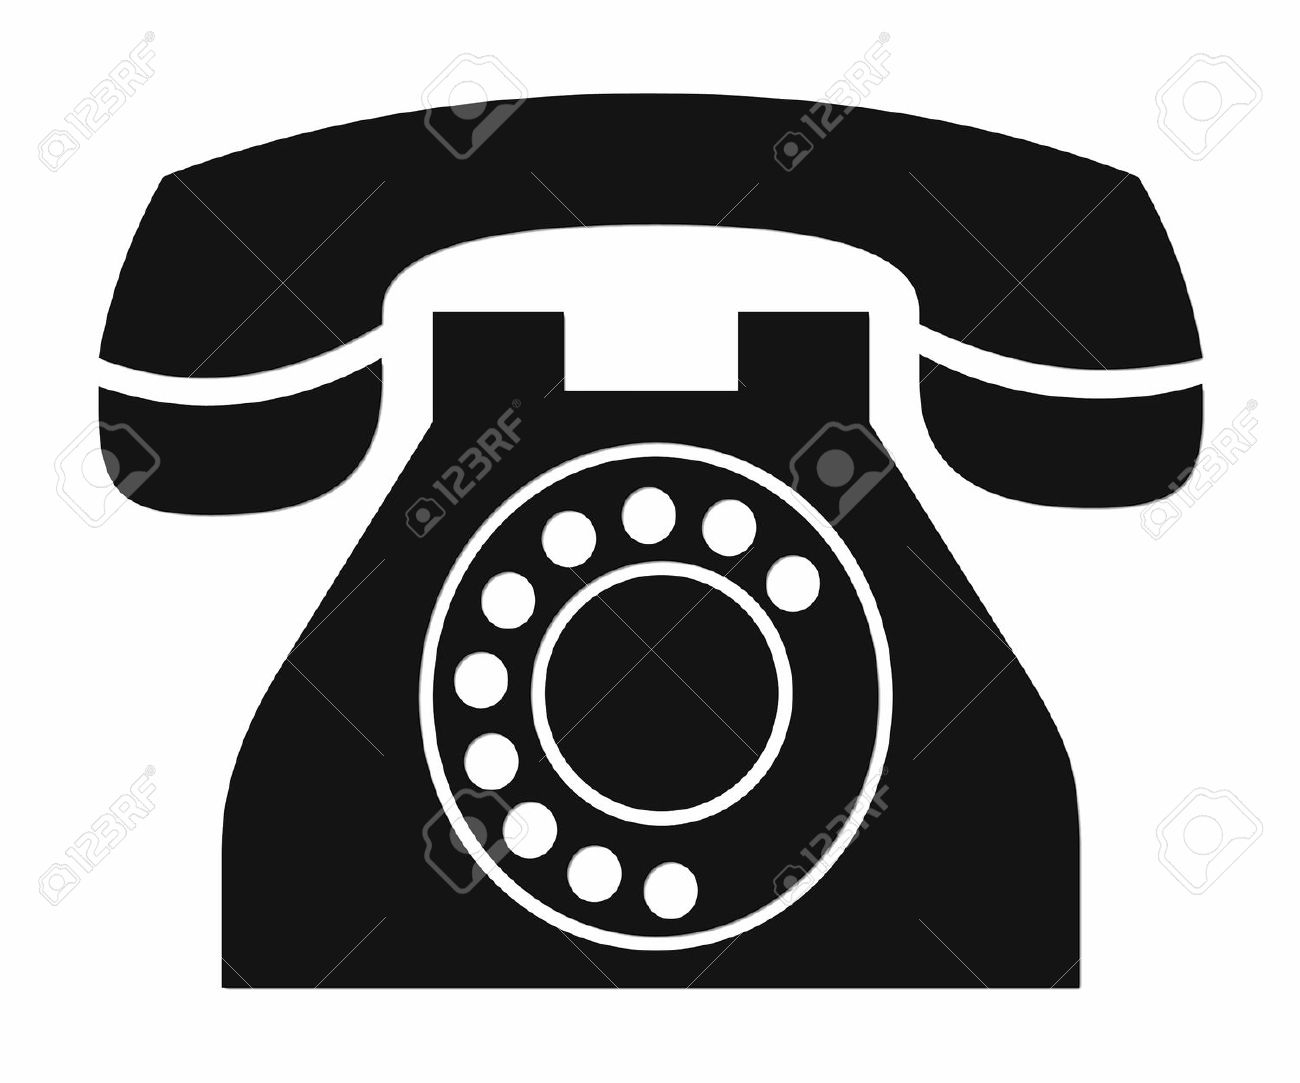 Telephone clipart. Awesome gallery digital collection